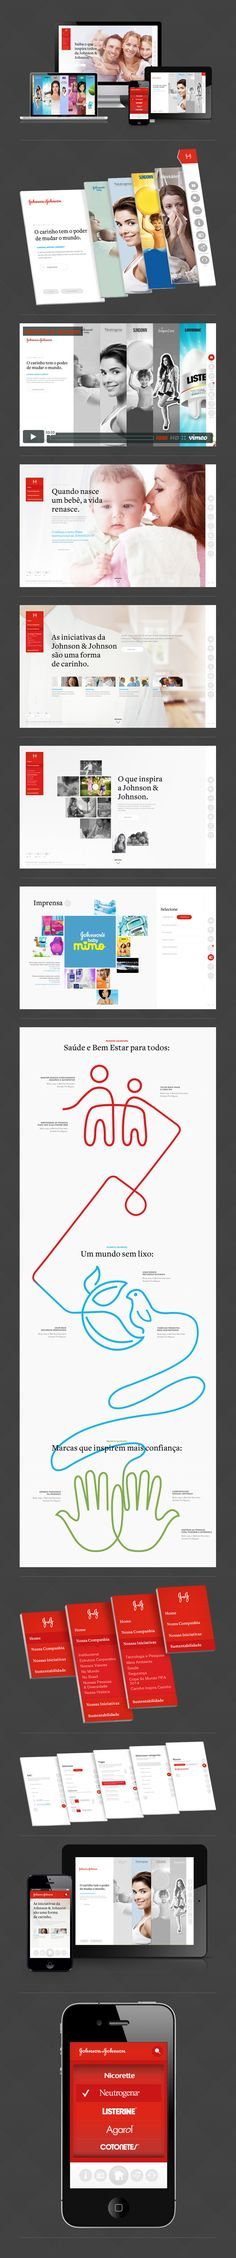 Johnson & Johnson by James Eduardo, via Behance *** The Johnson & Johnson page is a place for community members to connect with our company, and learn about our Corporate initiatives and programs, including those in health and wellness, philanthropy, and sustainability.